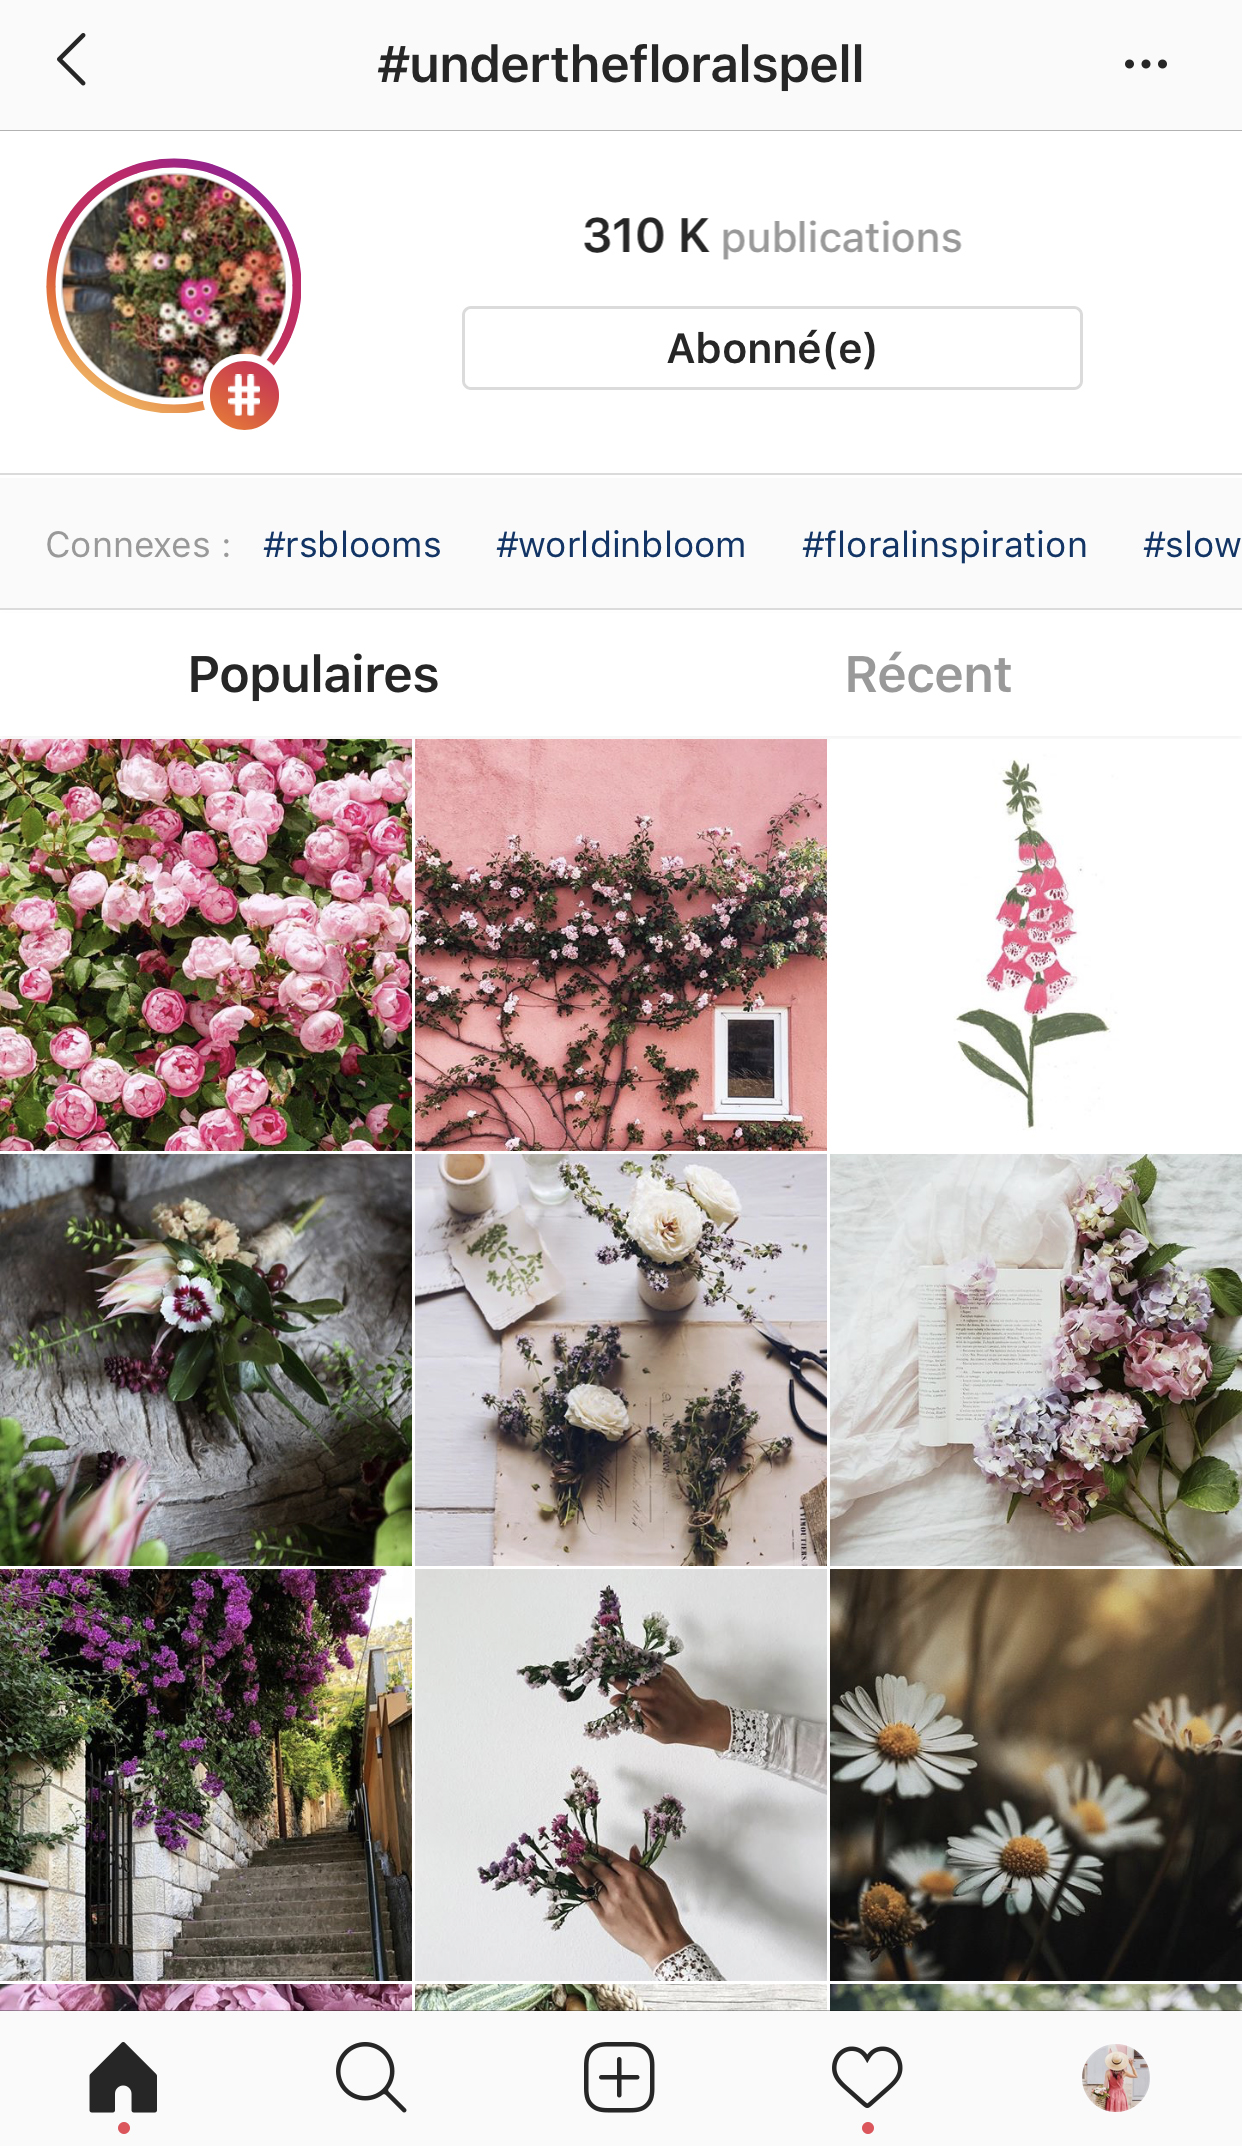 Cinq-petites-choses-hashtags-under-the-floral-spell